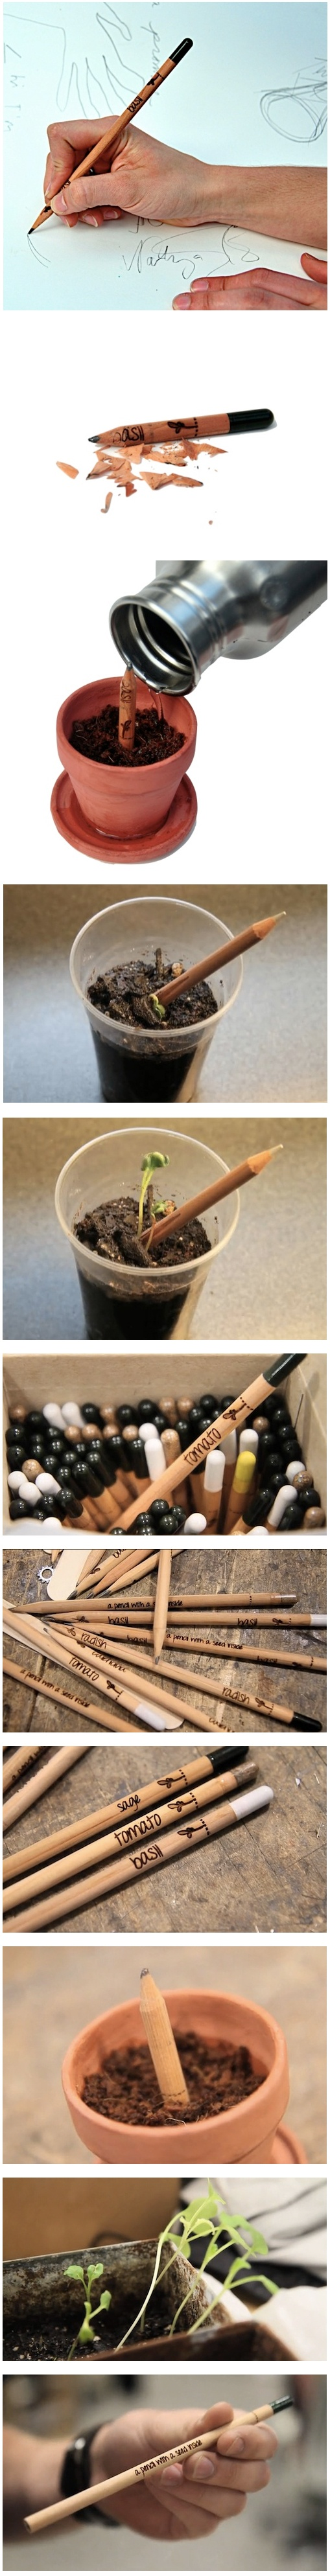 Sprout: a pencil with potential...  When This Pencil Becomes Too Short, Plant It to Grow Herbs.  Project by #democratech  http://www.kickstarter.com/projects/democratech/sprout-a-pencil-with-a-seed